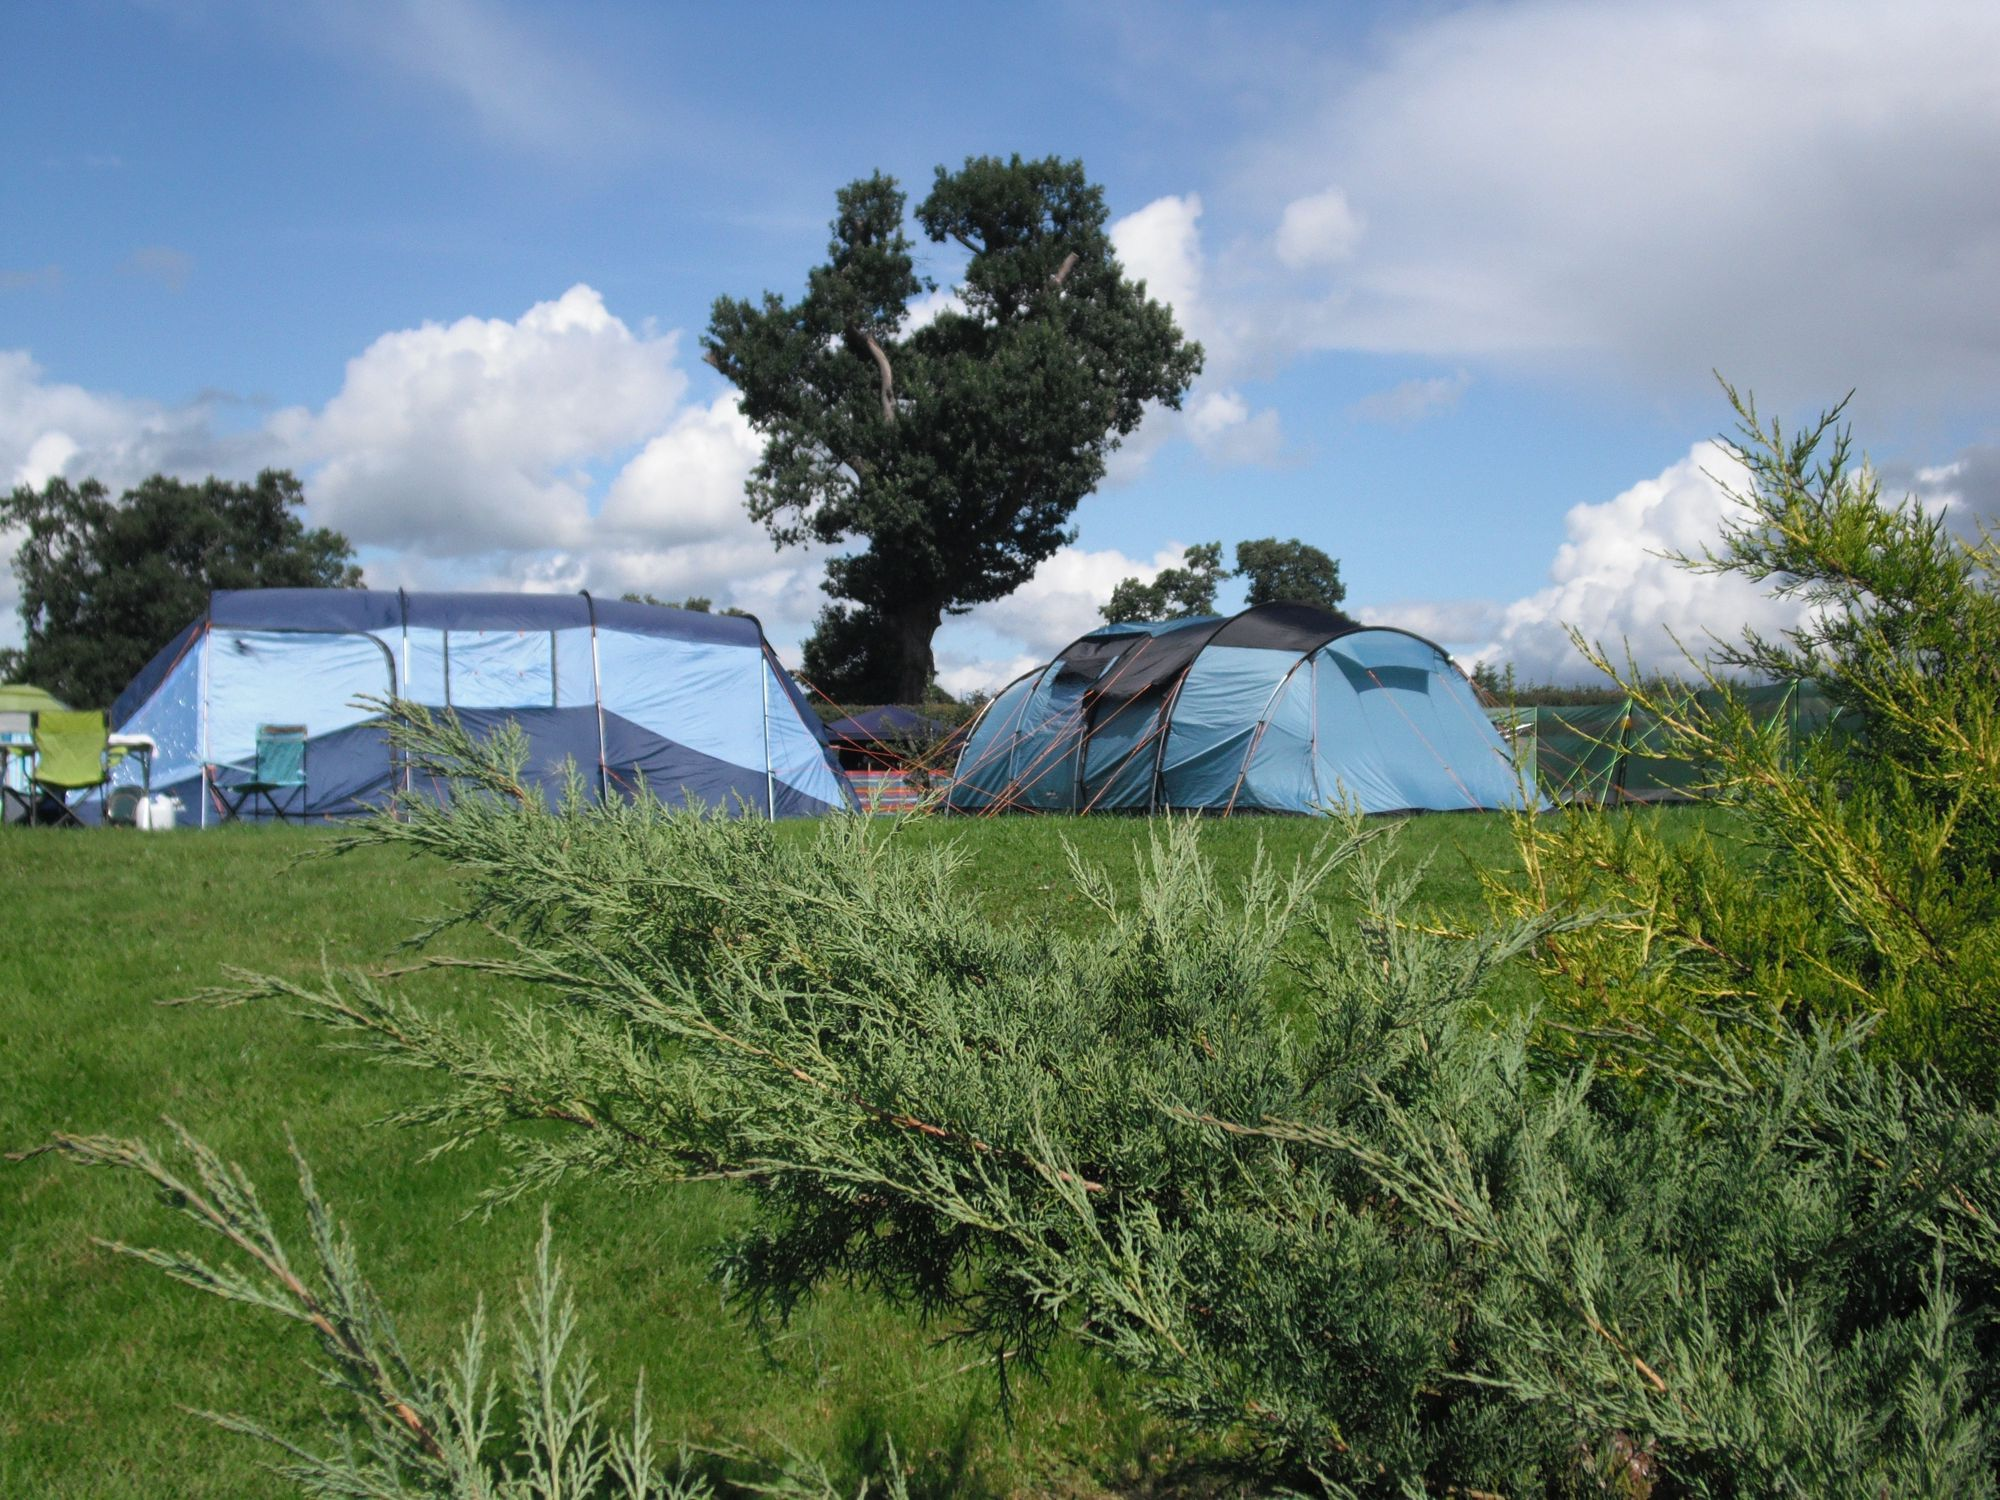 This inviting, well-maintained and peaceful little site in the heart of the Welsh countryside strikes that all-important balance of remaining unspoiled, yet still featuring homely facilities that makes camping comfortable.